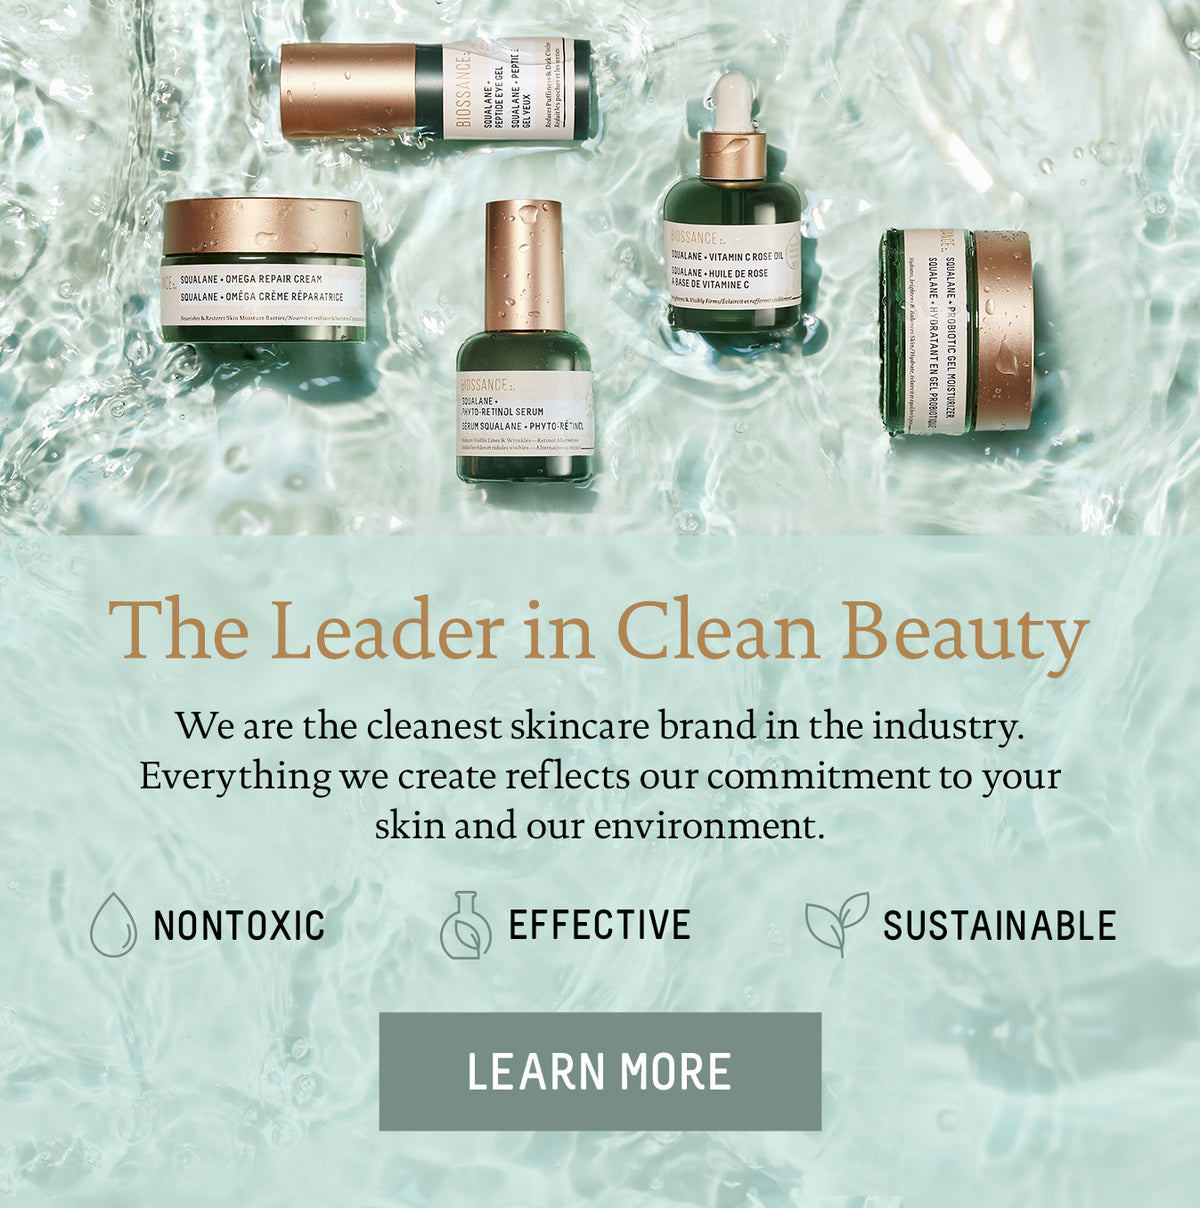 The Leader in Clean Beauty. We are the cleanest skincare brand in the industry. Everything we create reflects our commitment to your skin and our environment. Nontoxic. Sustainable. Effective.